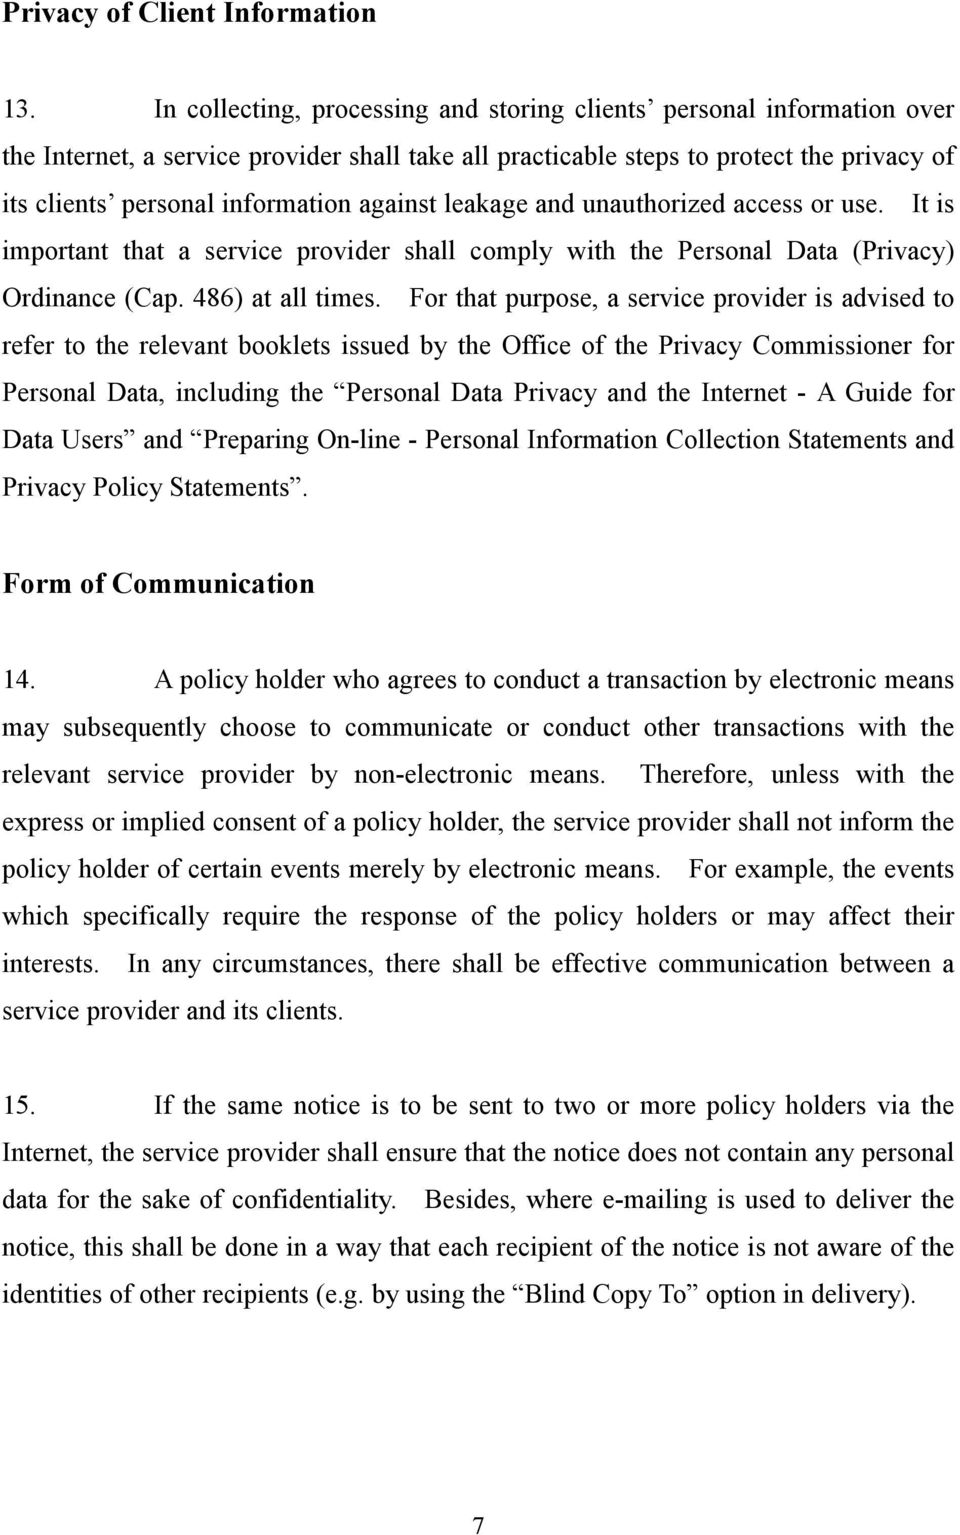 against leakage and unauthorized access or use. It is important that a service provider shall comply with the Personal Data (Privacy) Ordinance (Cap. 486) at all times.